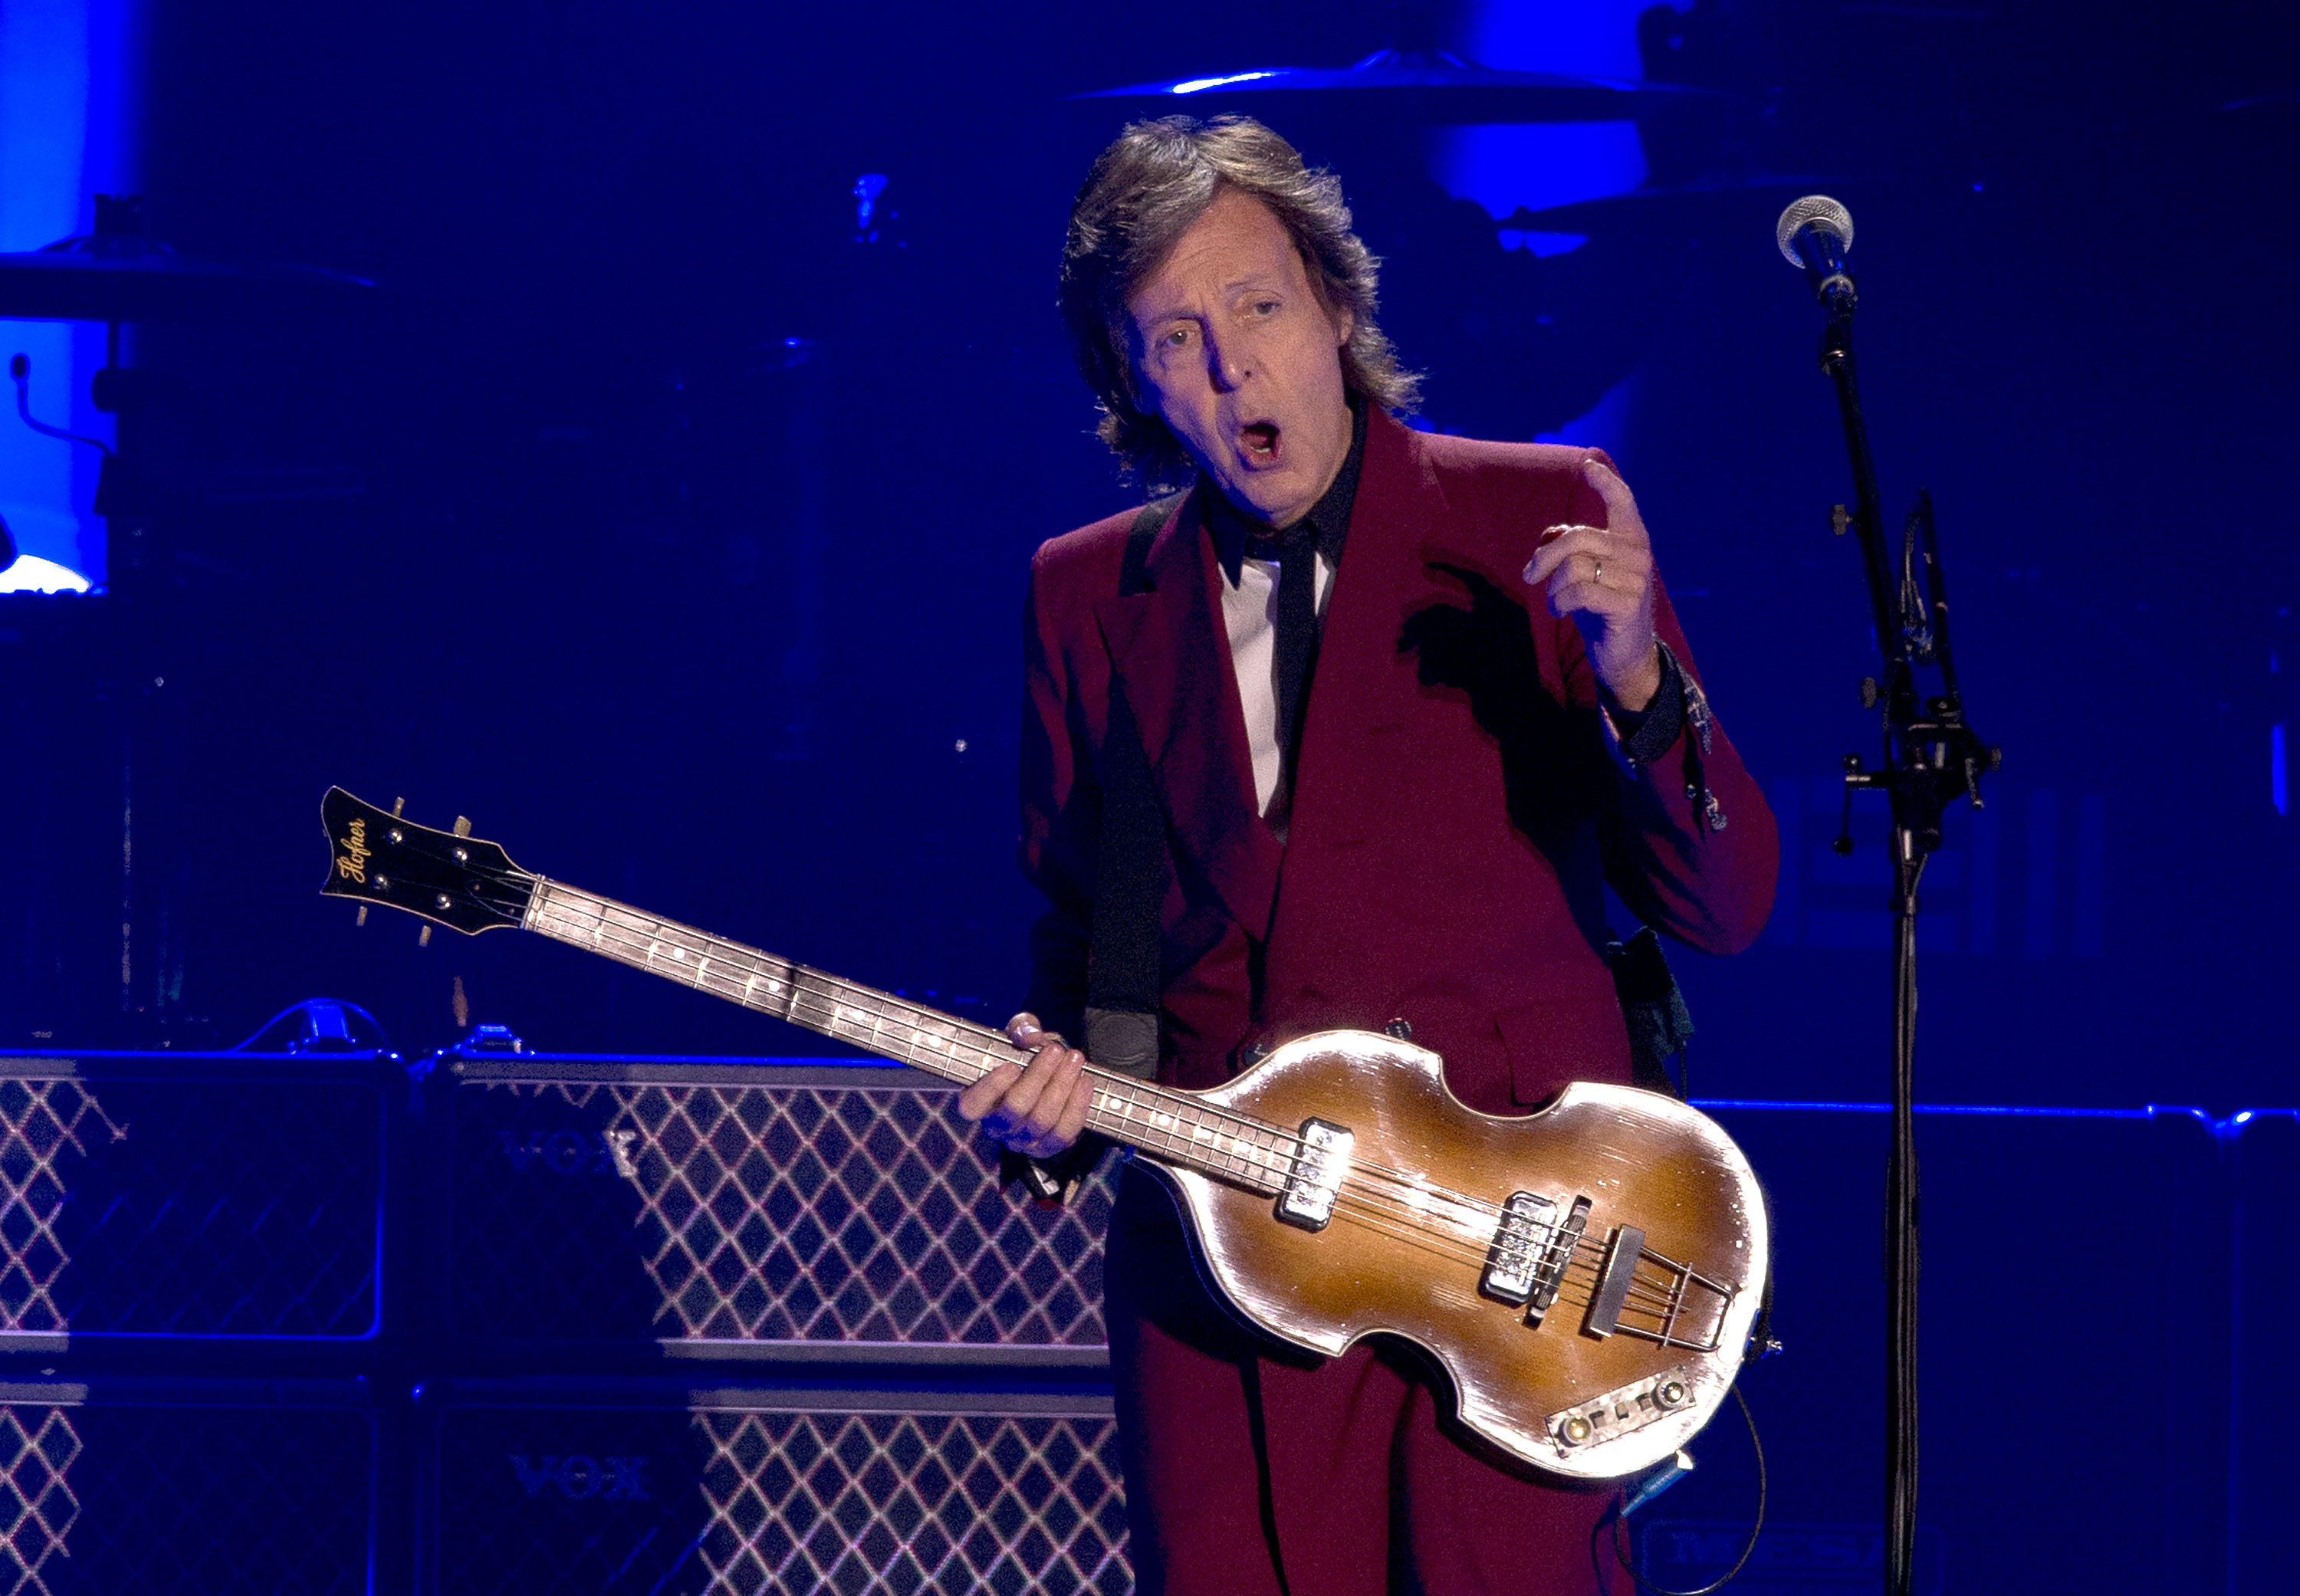 SAN FRANCISCO, CA - AUGUST 14:  Sir Paul McCartney performs live at the last event 'Farewell to Candlestick' concert at Candl